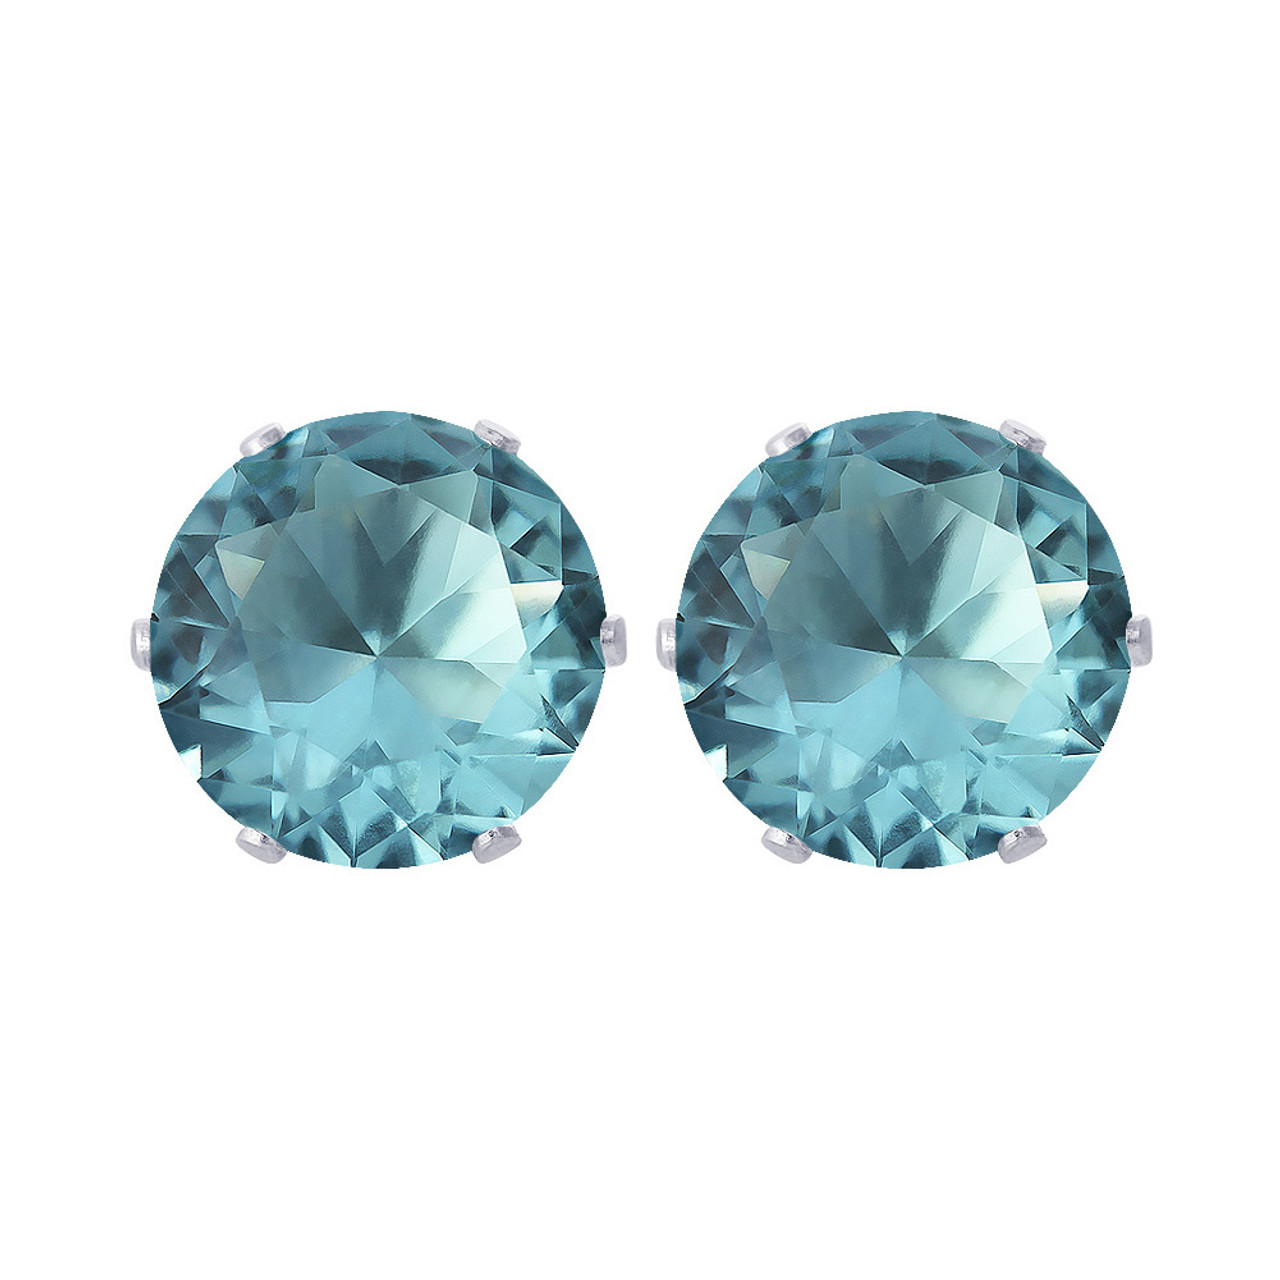 6mm Round Aqua Color March Birthstone Stud Earrings